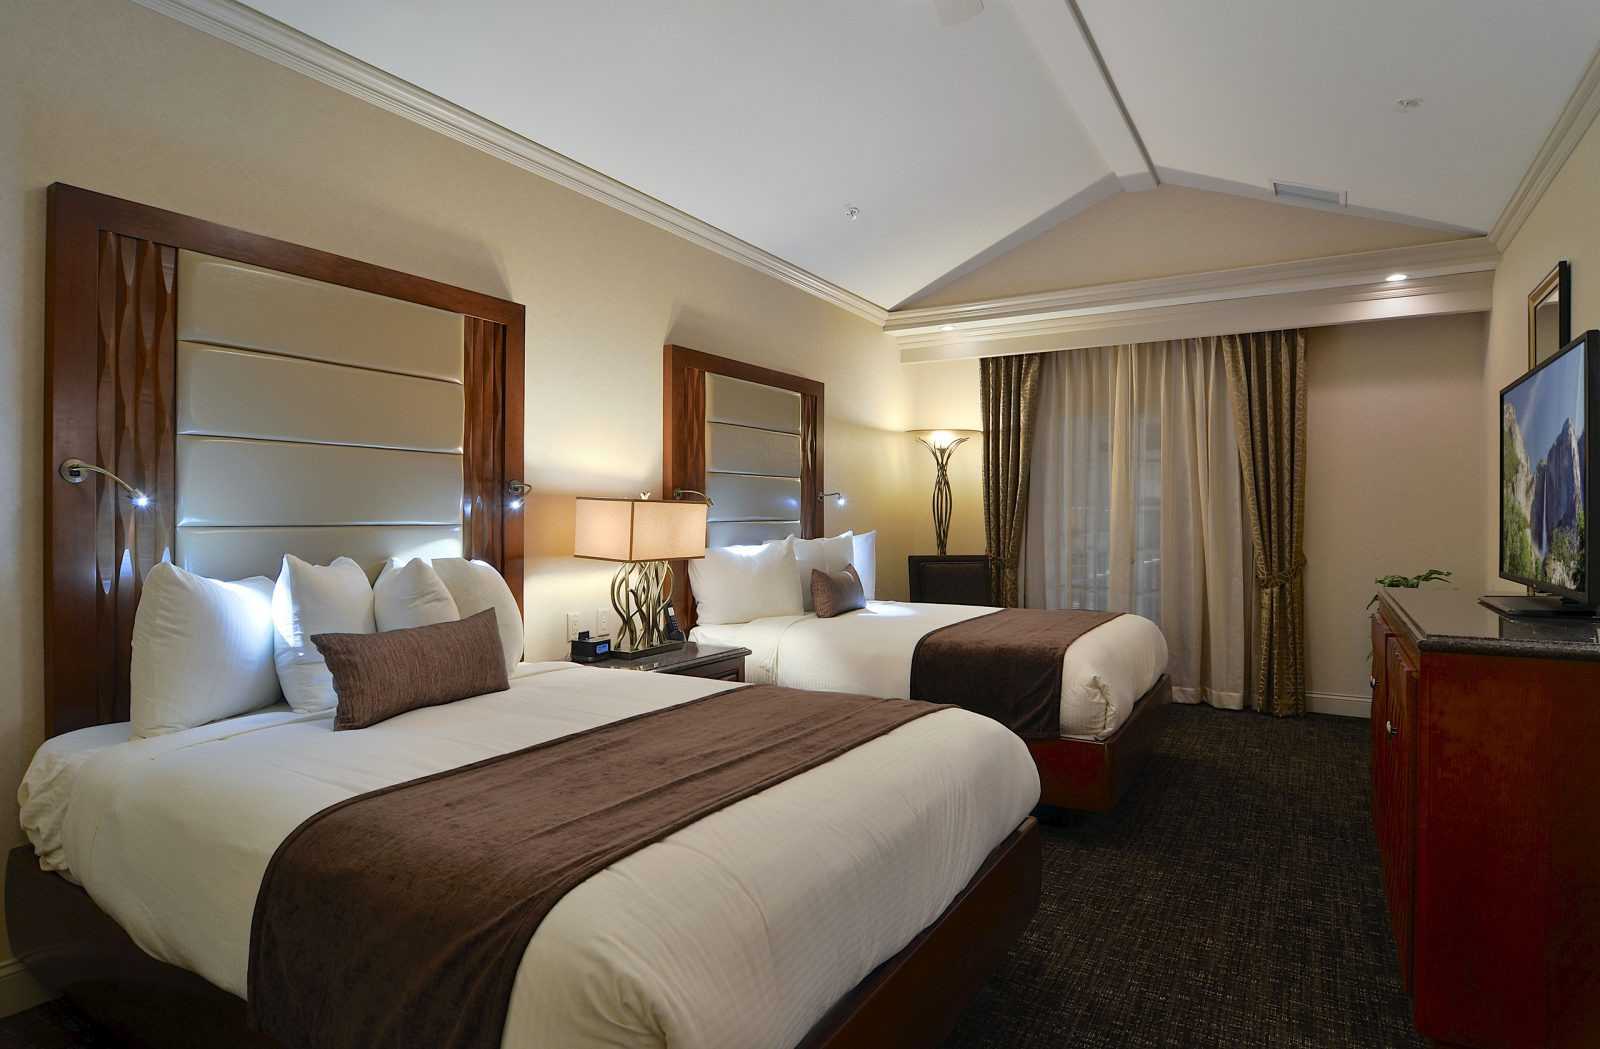 Best ideas about Hotels With Two Bedroom Suites . Save or Pin Hotel Rooms With Two Bedrooms Now.